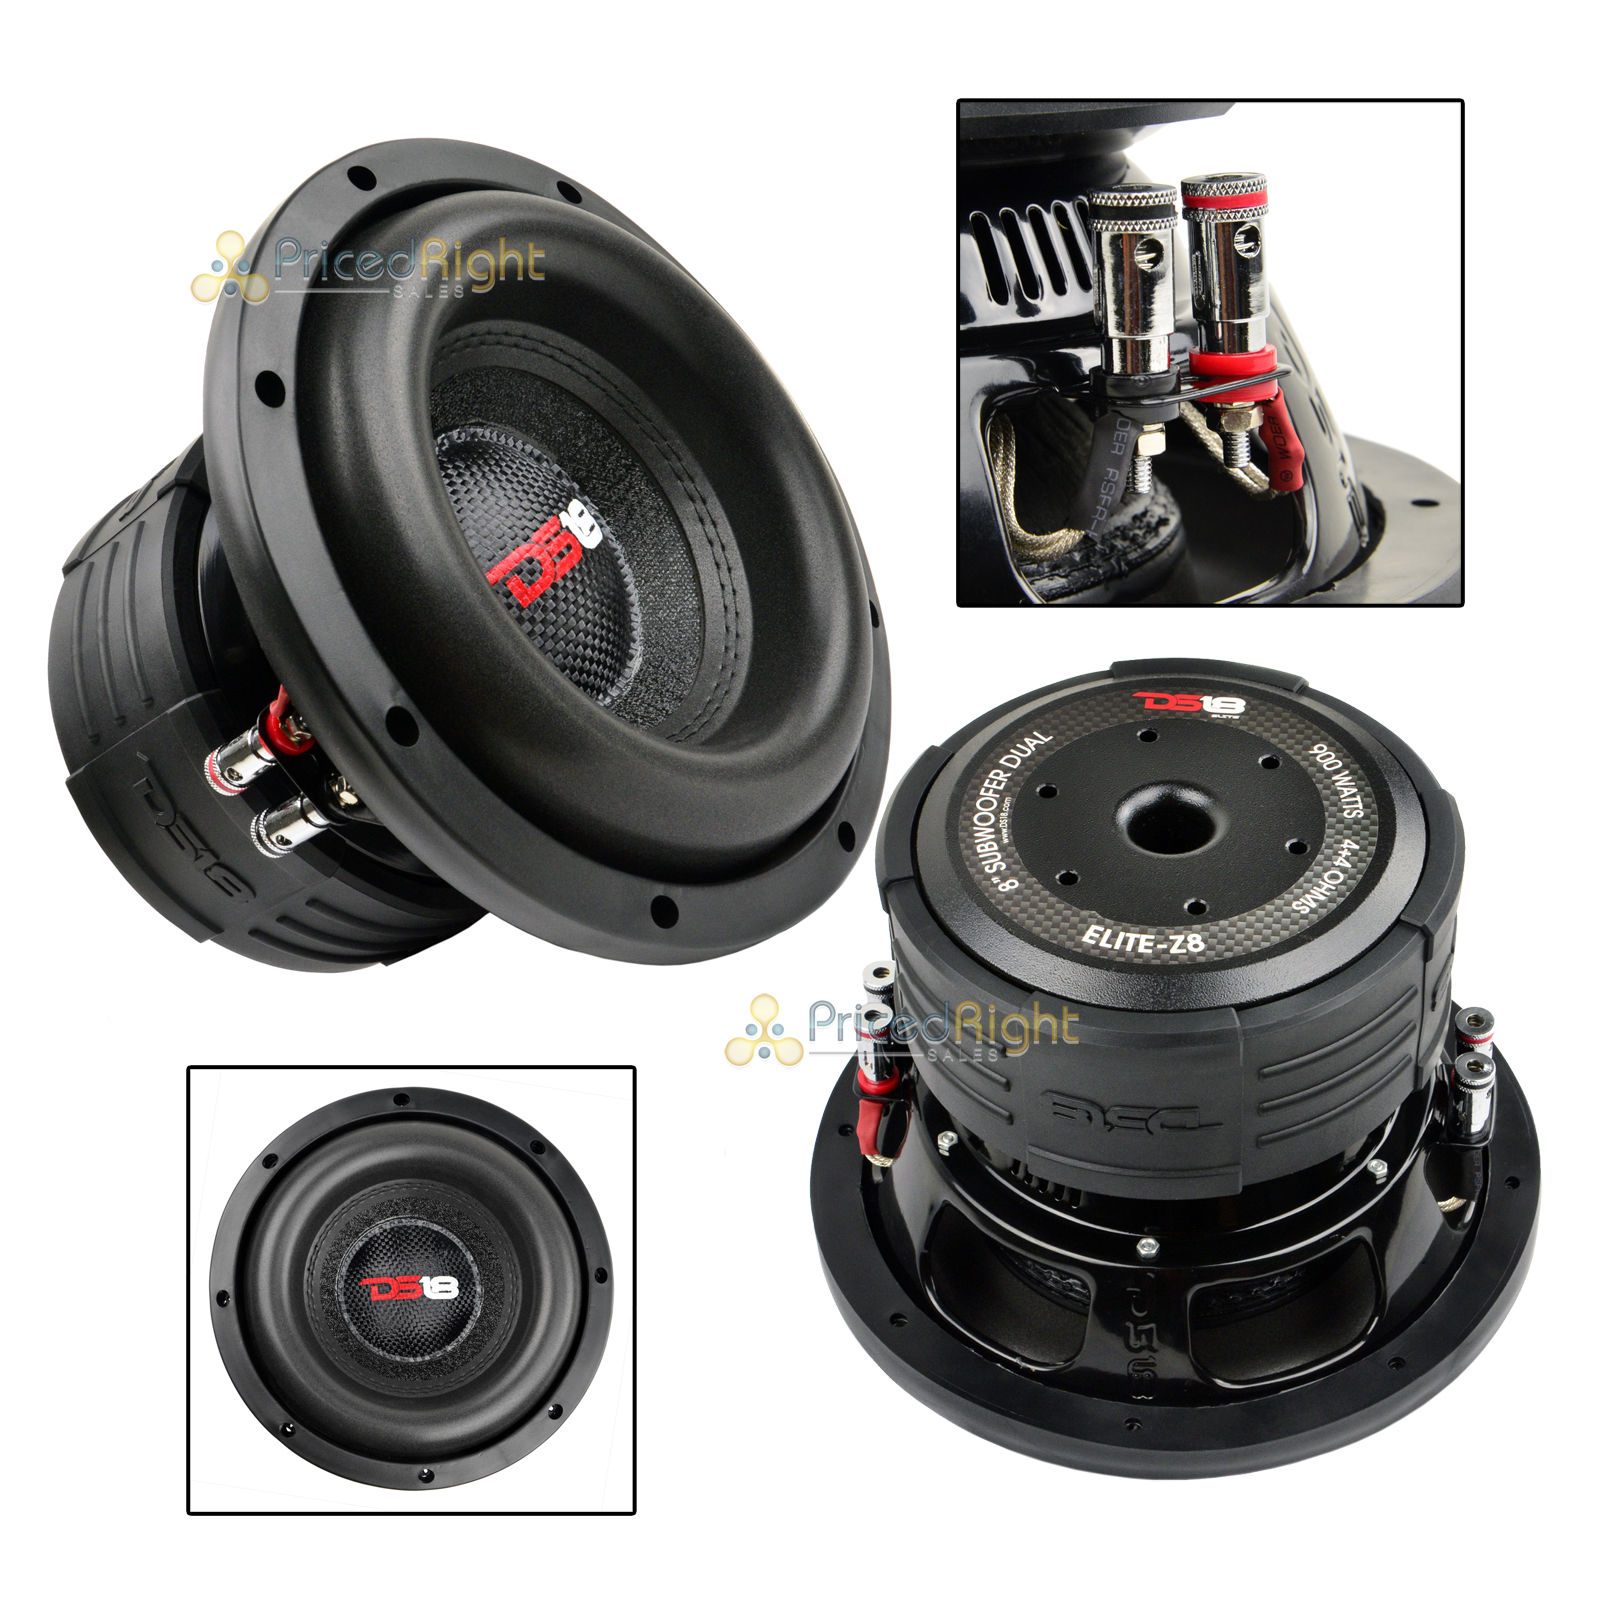 "DS18 Elite Z8 8"" Subwoofer Dual 4 Ohm 900 Watts Max Bass Sub Speaker Car 